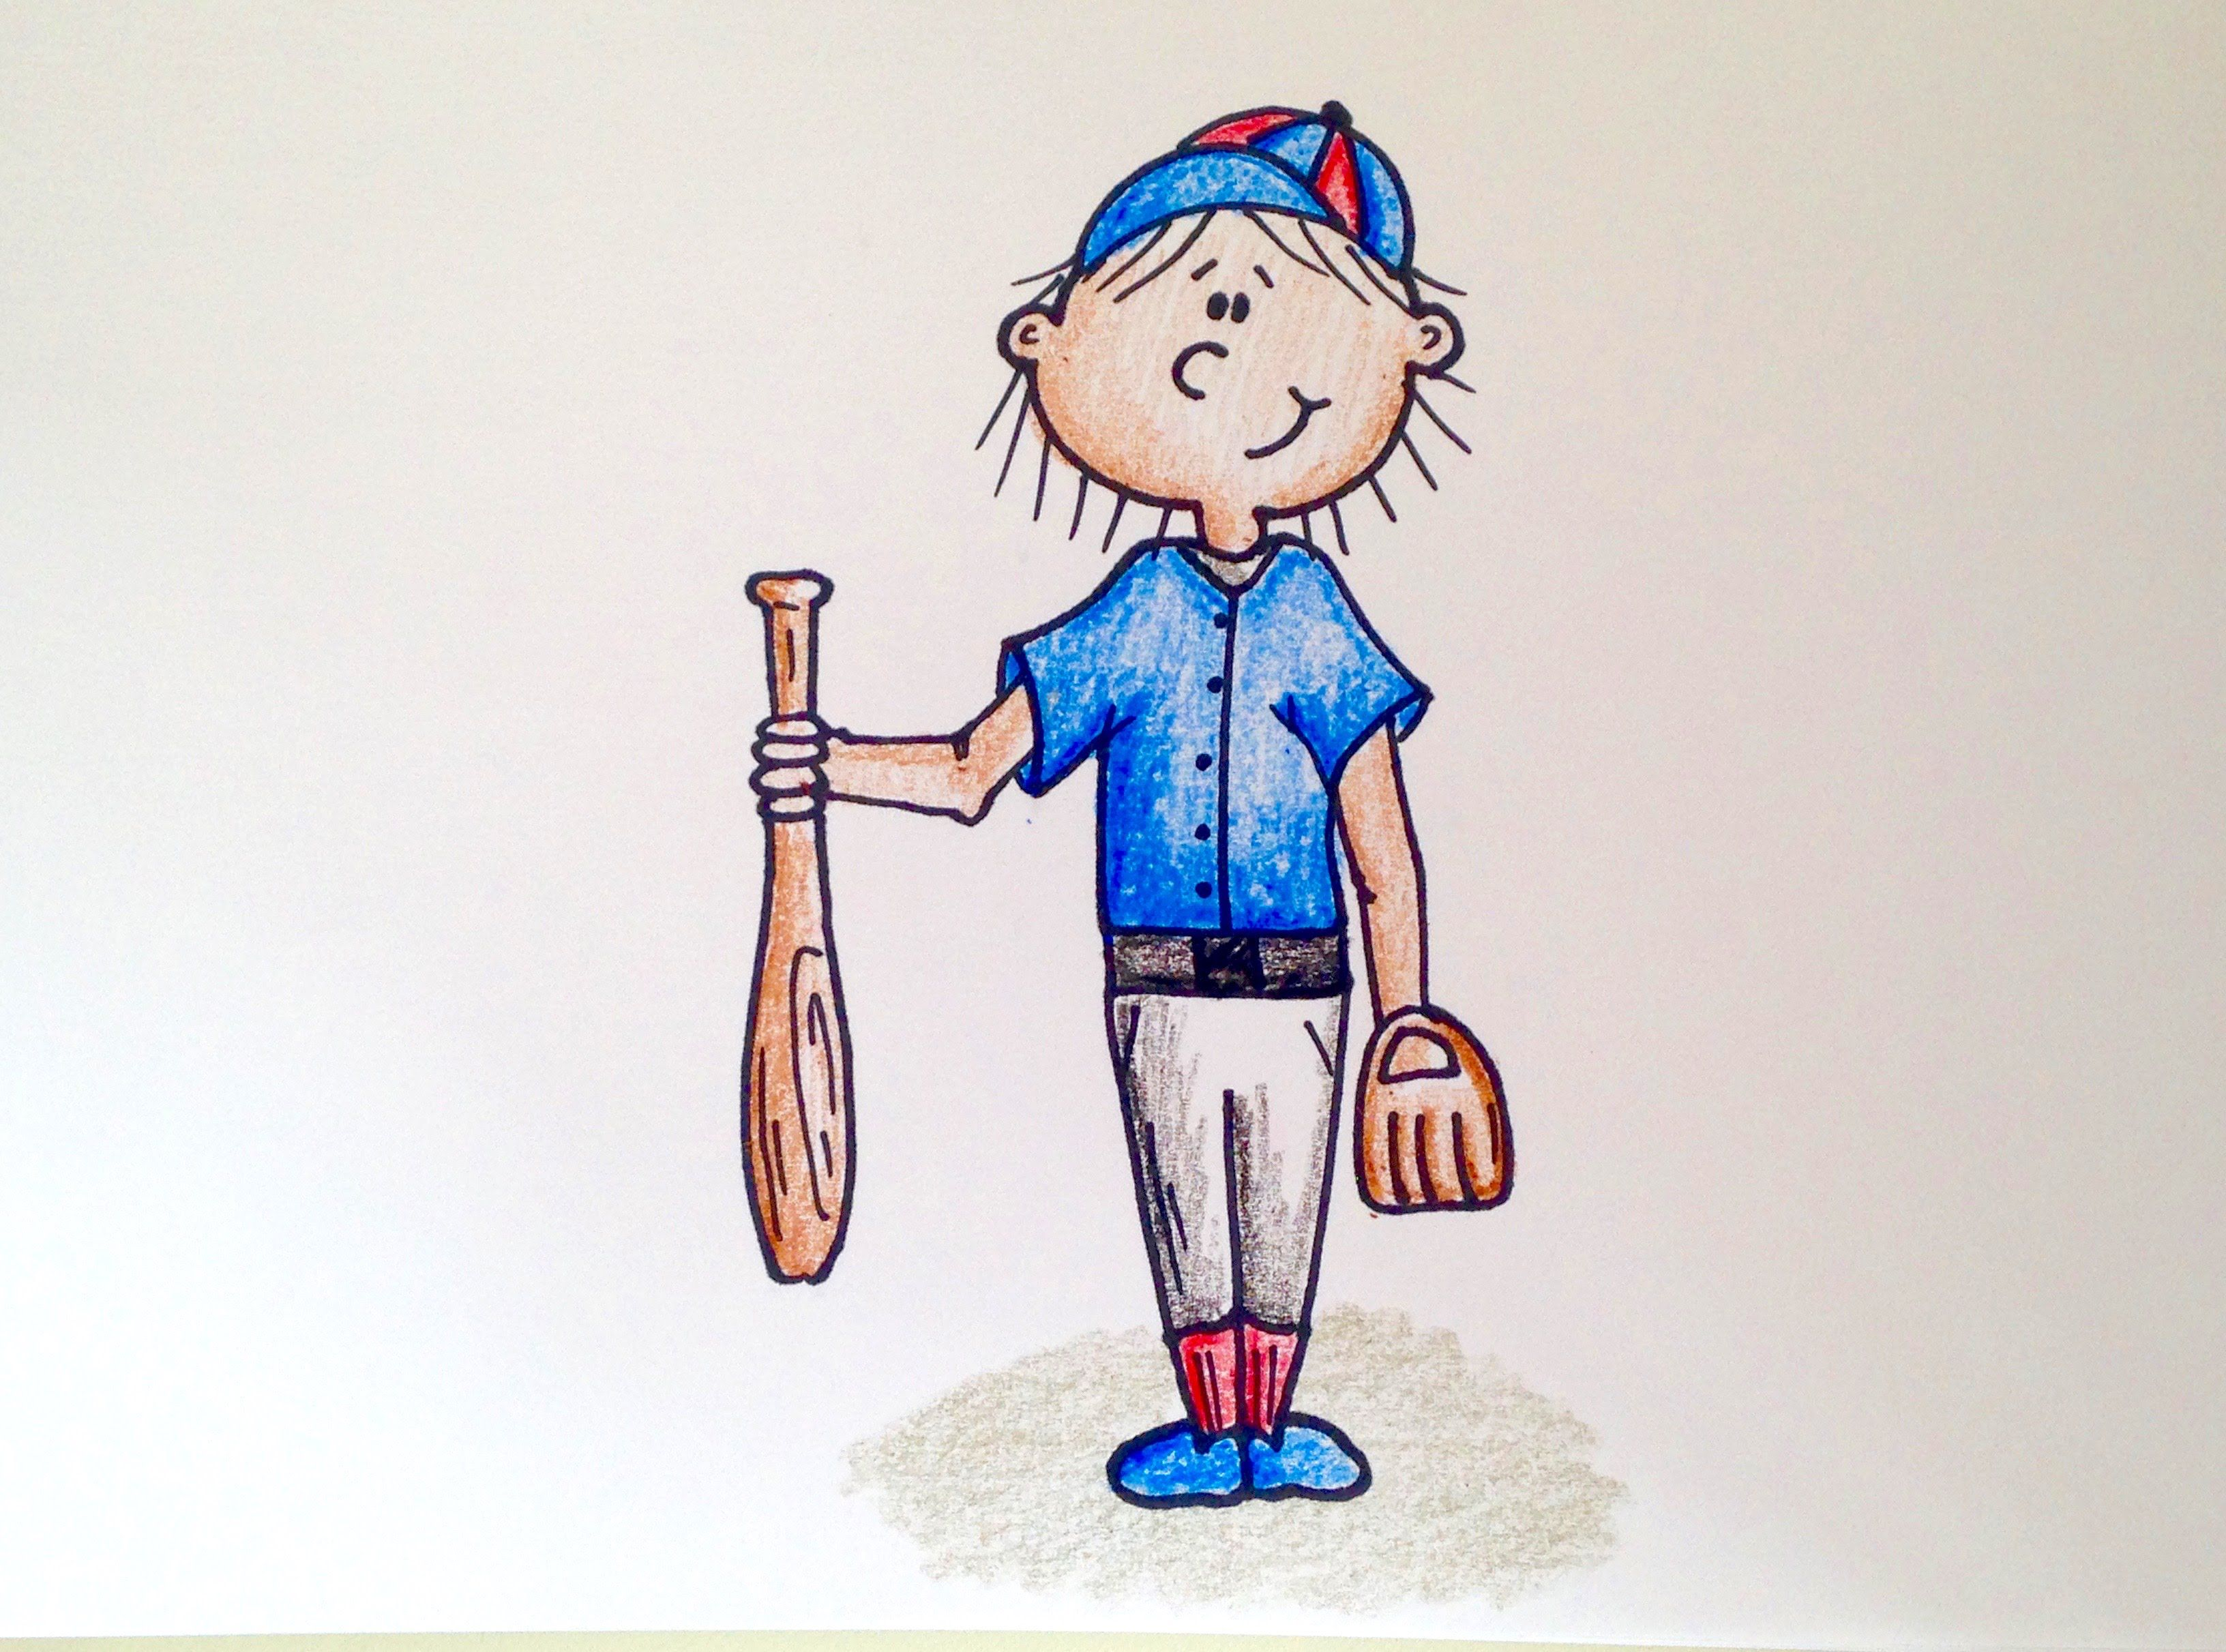 Drawing Lesson For Kids How To Draw A Baseball Player Drawing Lessons For Kids Drawing Lessons Drawings